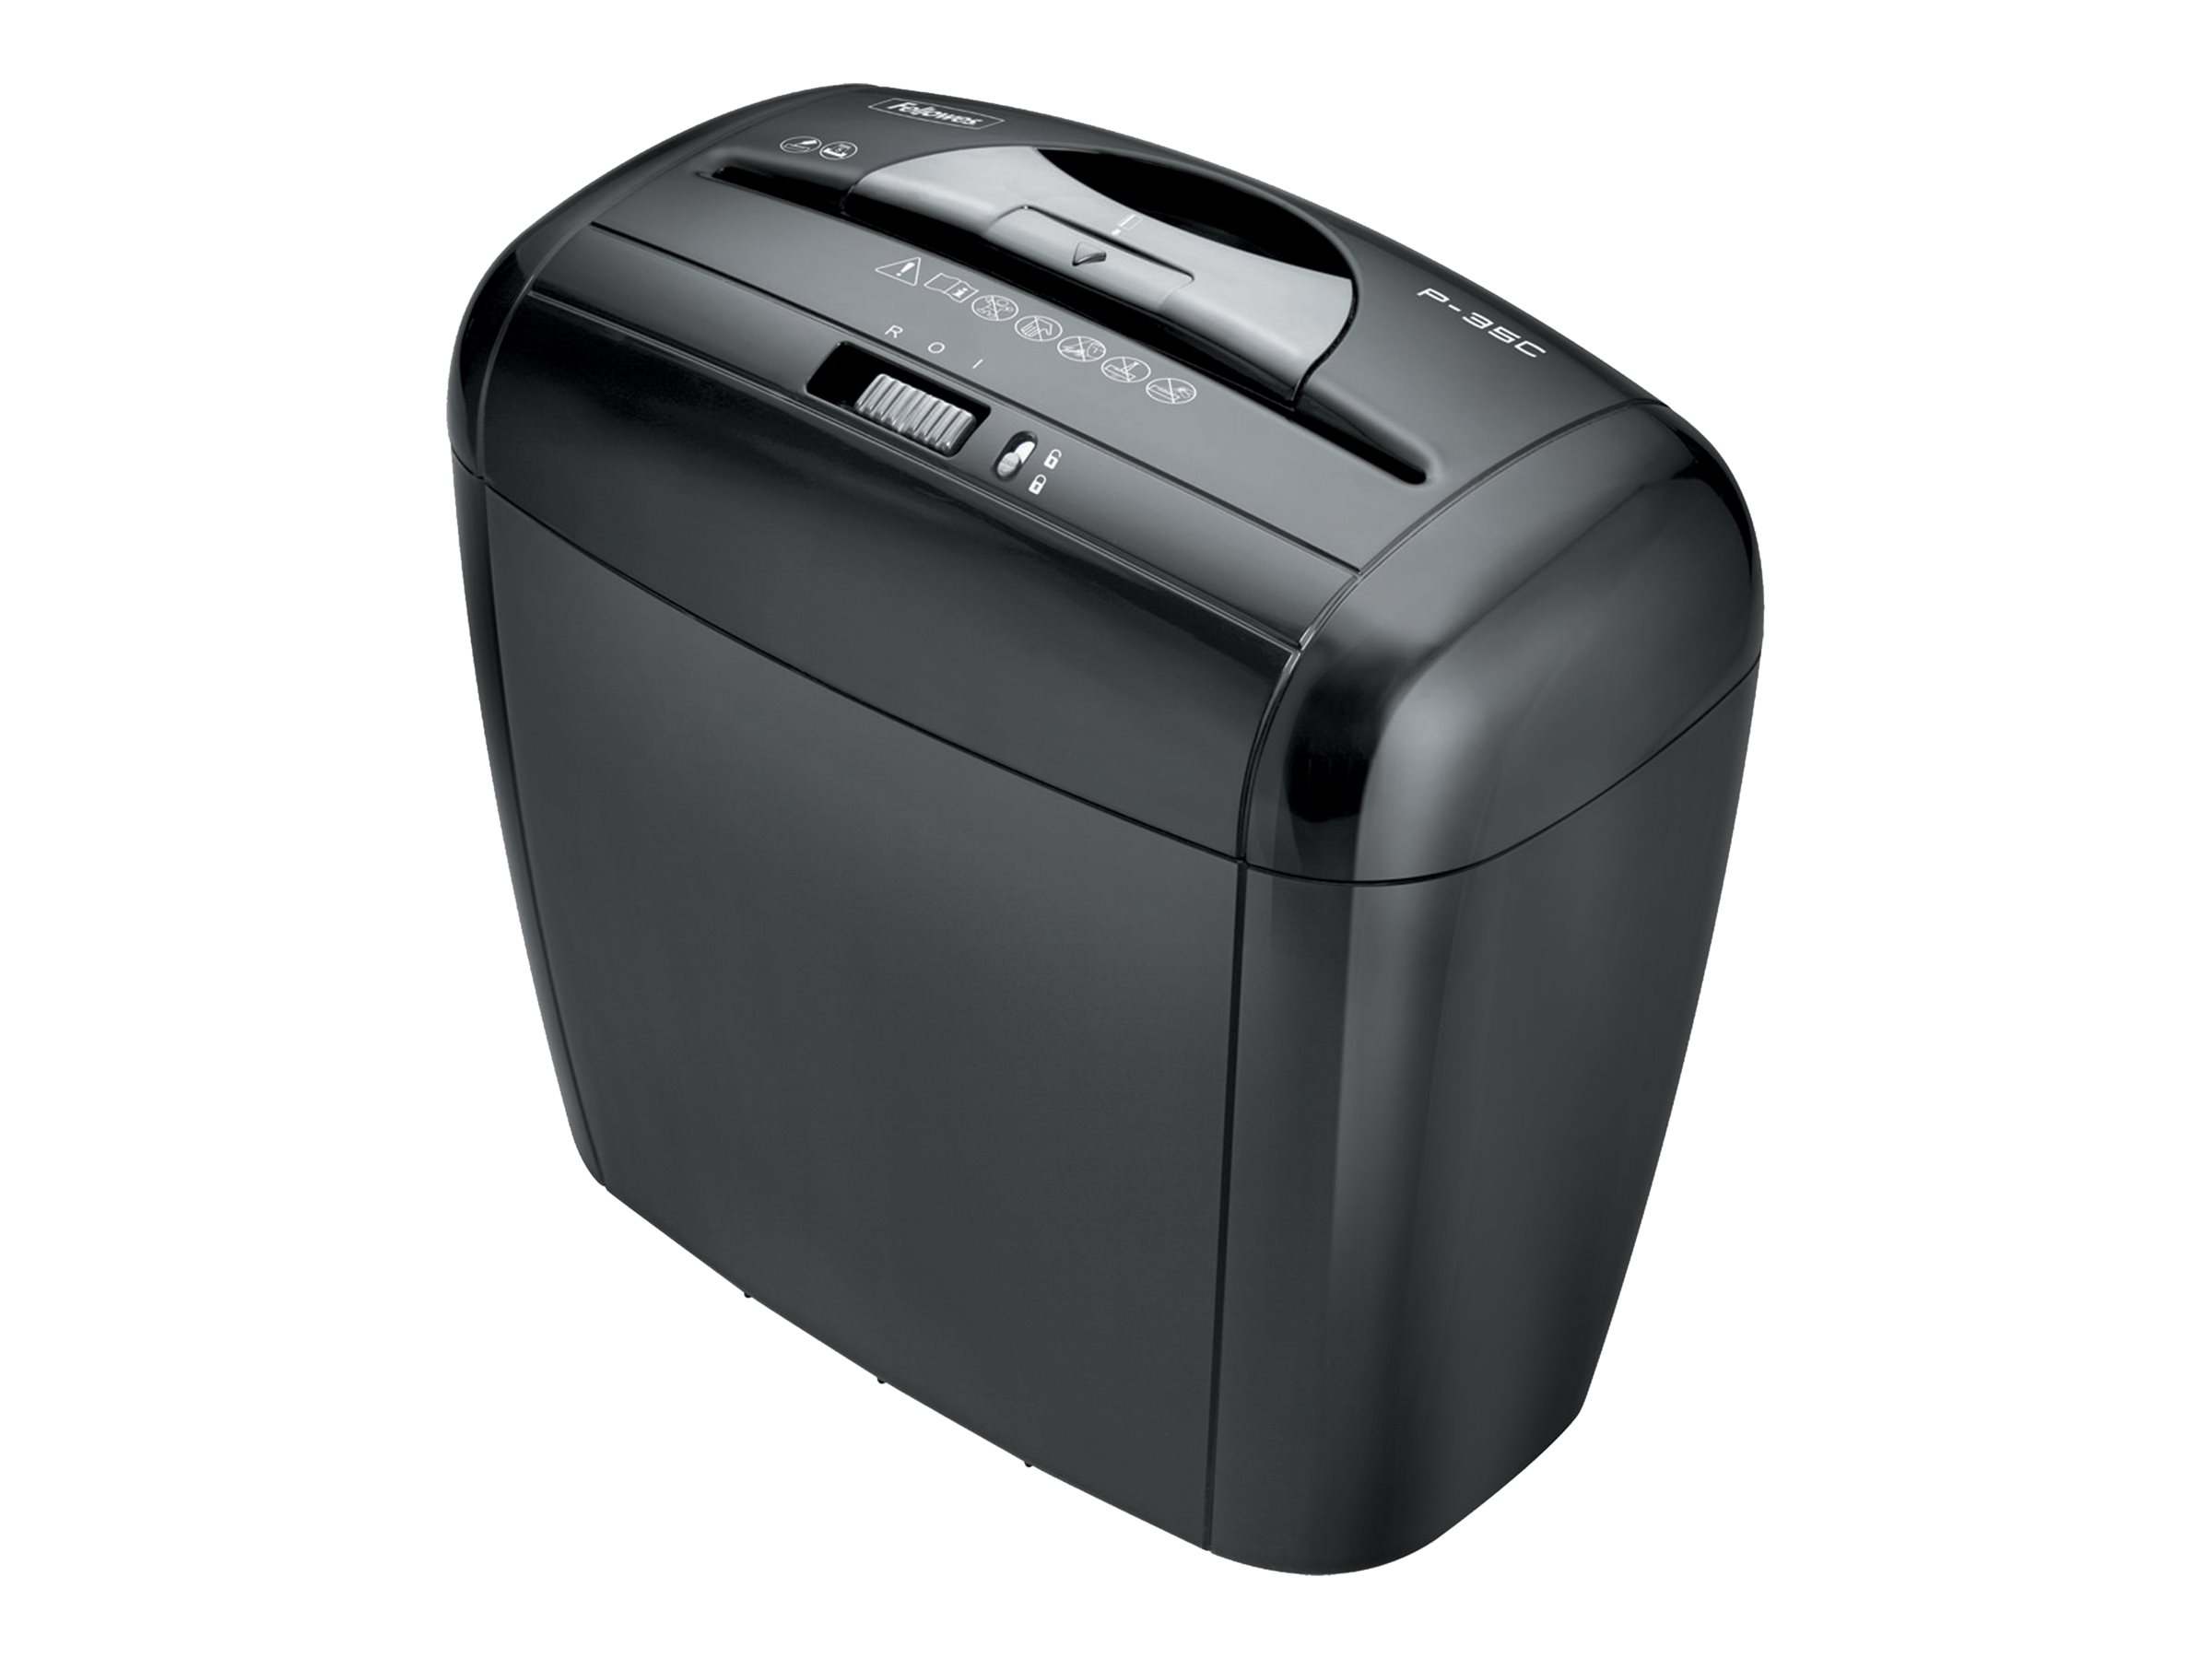 Image for Fellowes Powershred P-35C - Shredder from Circuit City